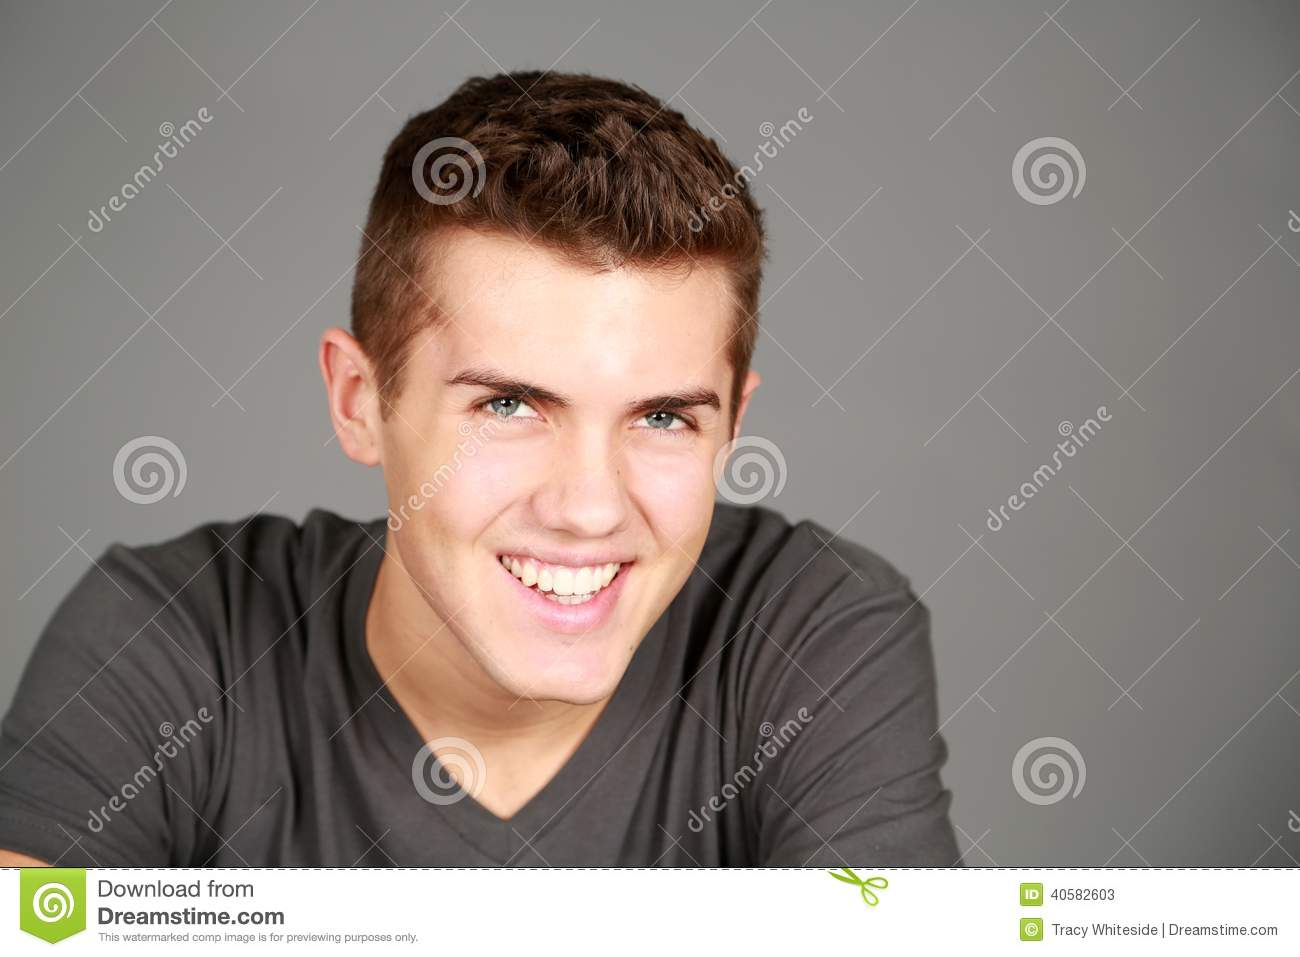 headshot-smiling-older-teen-boy-head-shot-happy-young-man-looking-camera-40582603.jpg